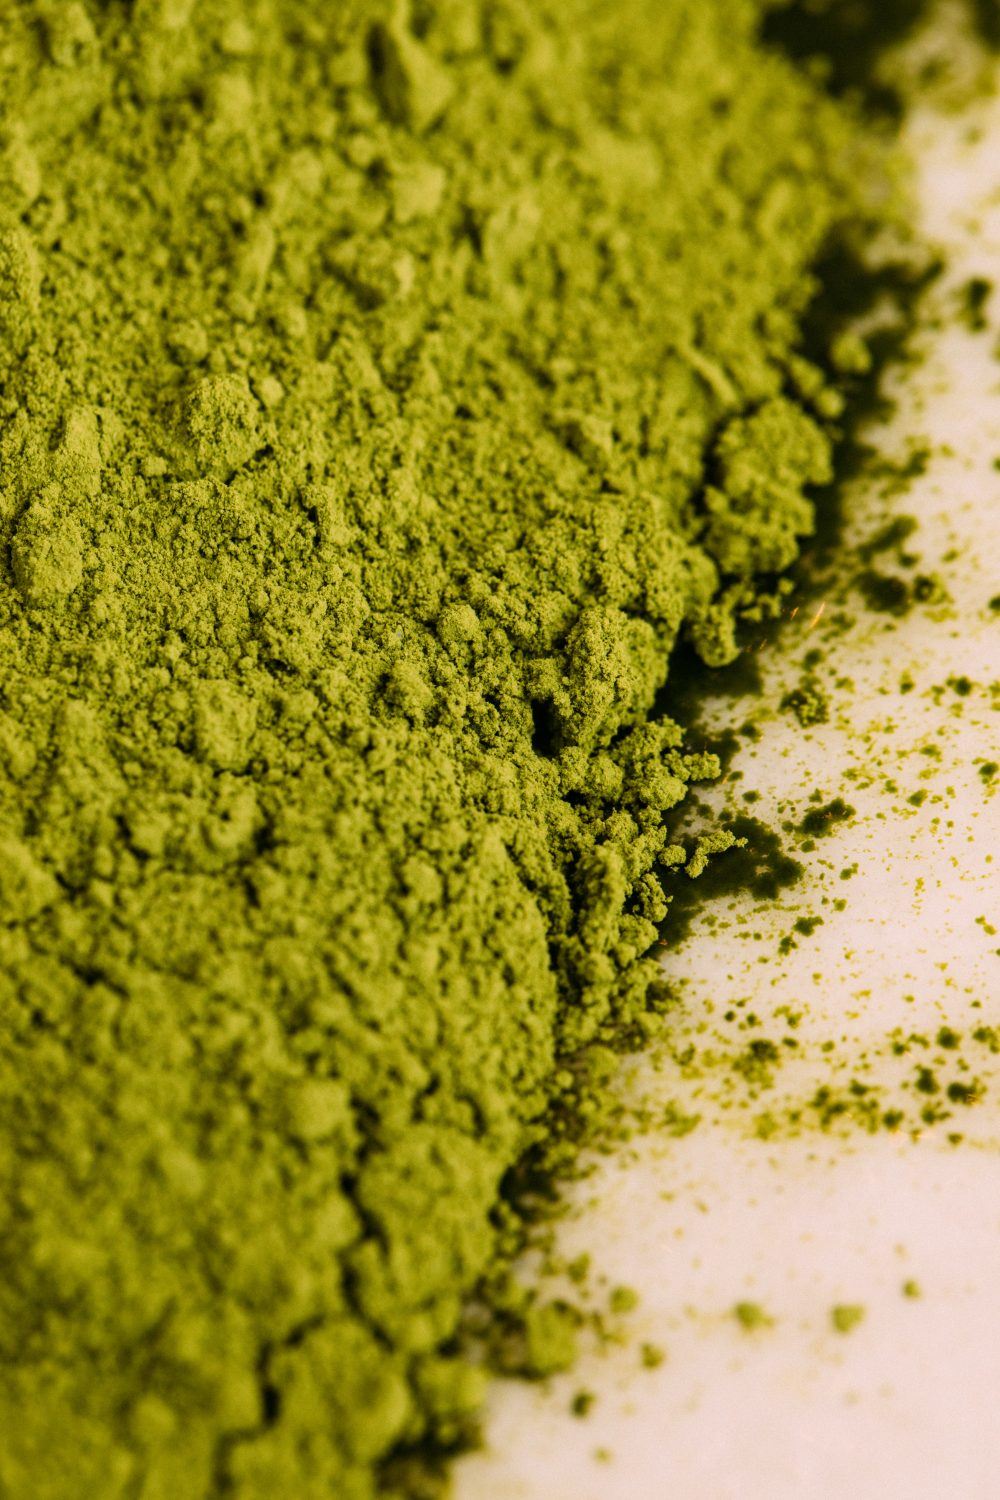 breaking down the contents of matcha